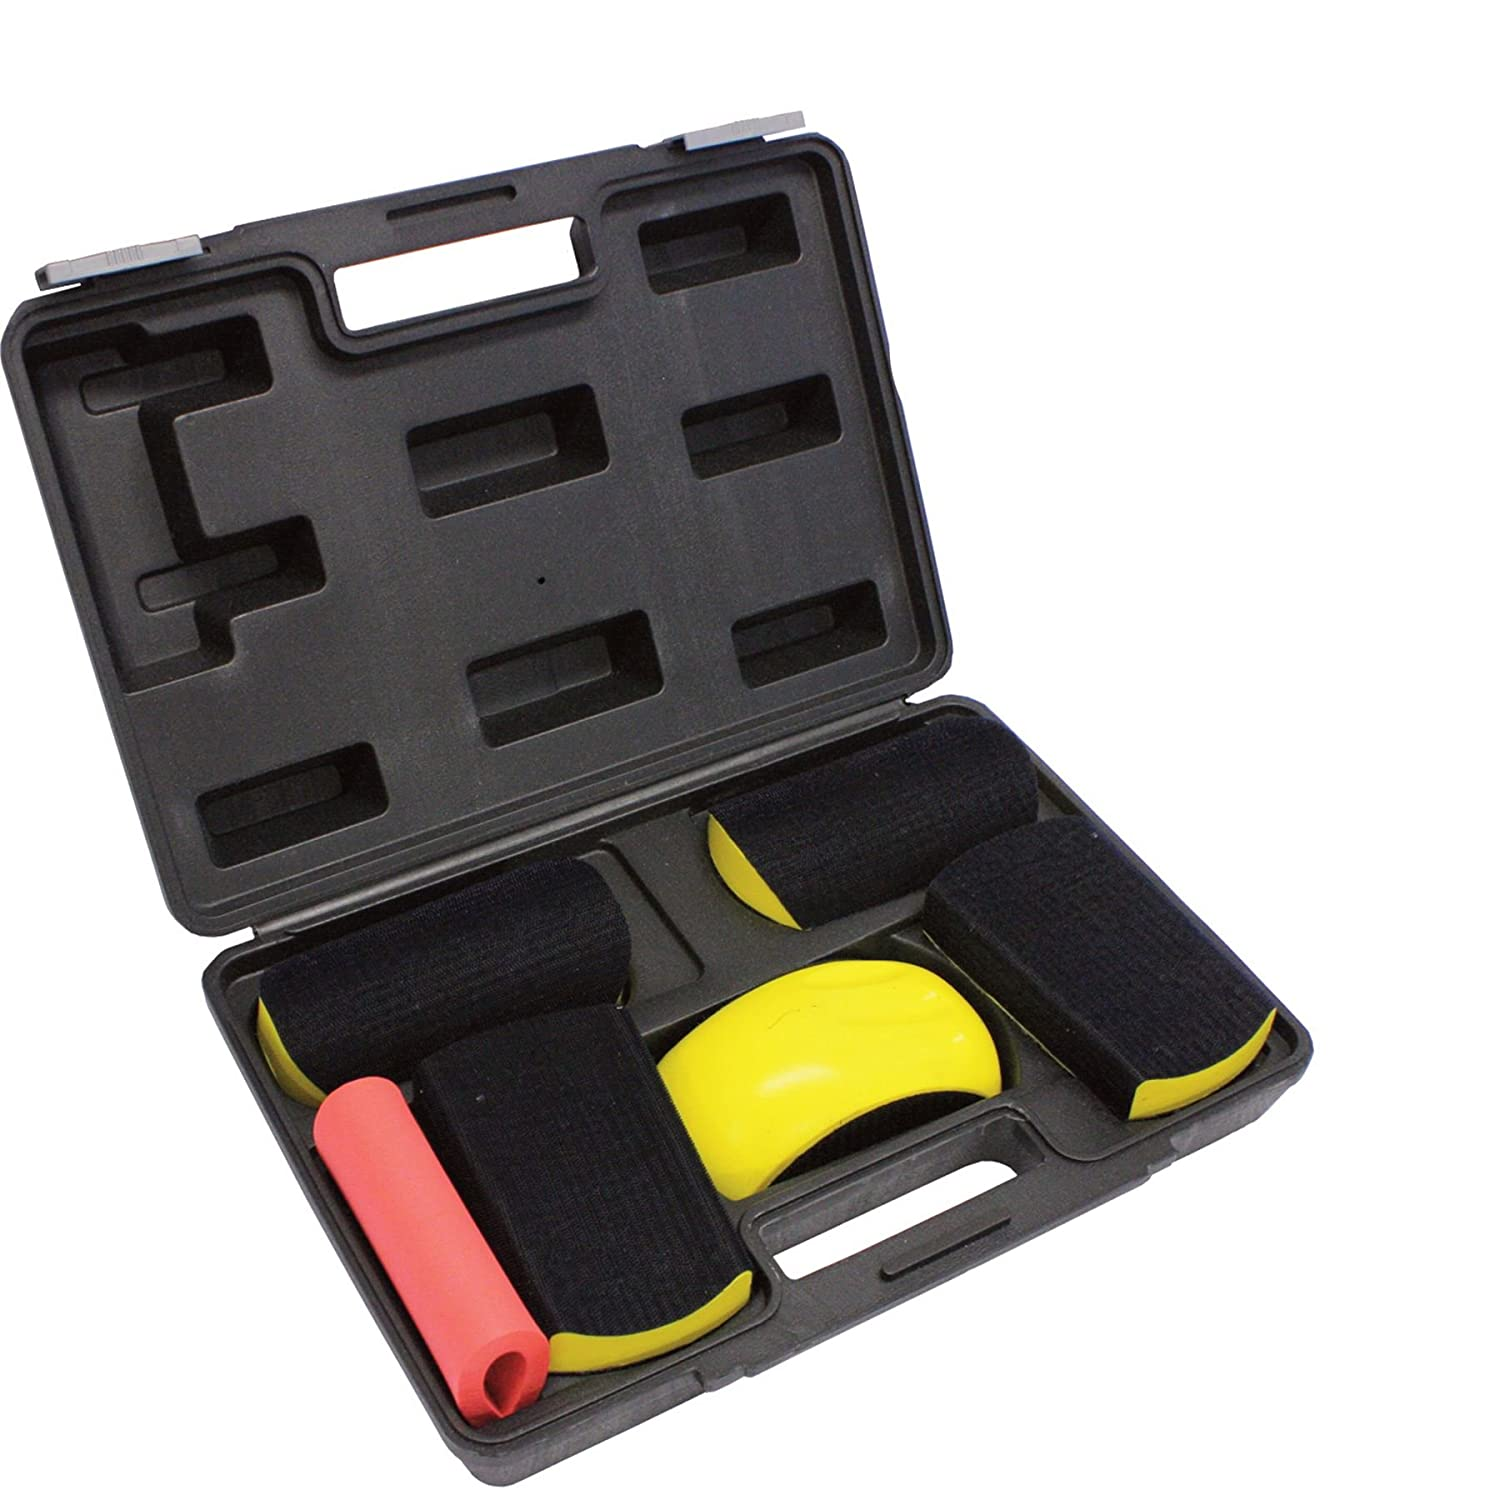 Fast Mover FMT5517 6 Piece Velcro Sanding Block Kit - Convex Concave Bodyshop Abrasive in Suitcase. FMT5511 150mm Block & FMT5516 Teardrop Sander Kit idealy for Wheel Arches, Wings and Grooves